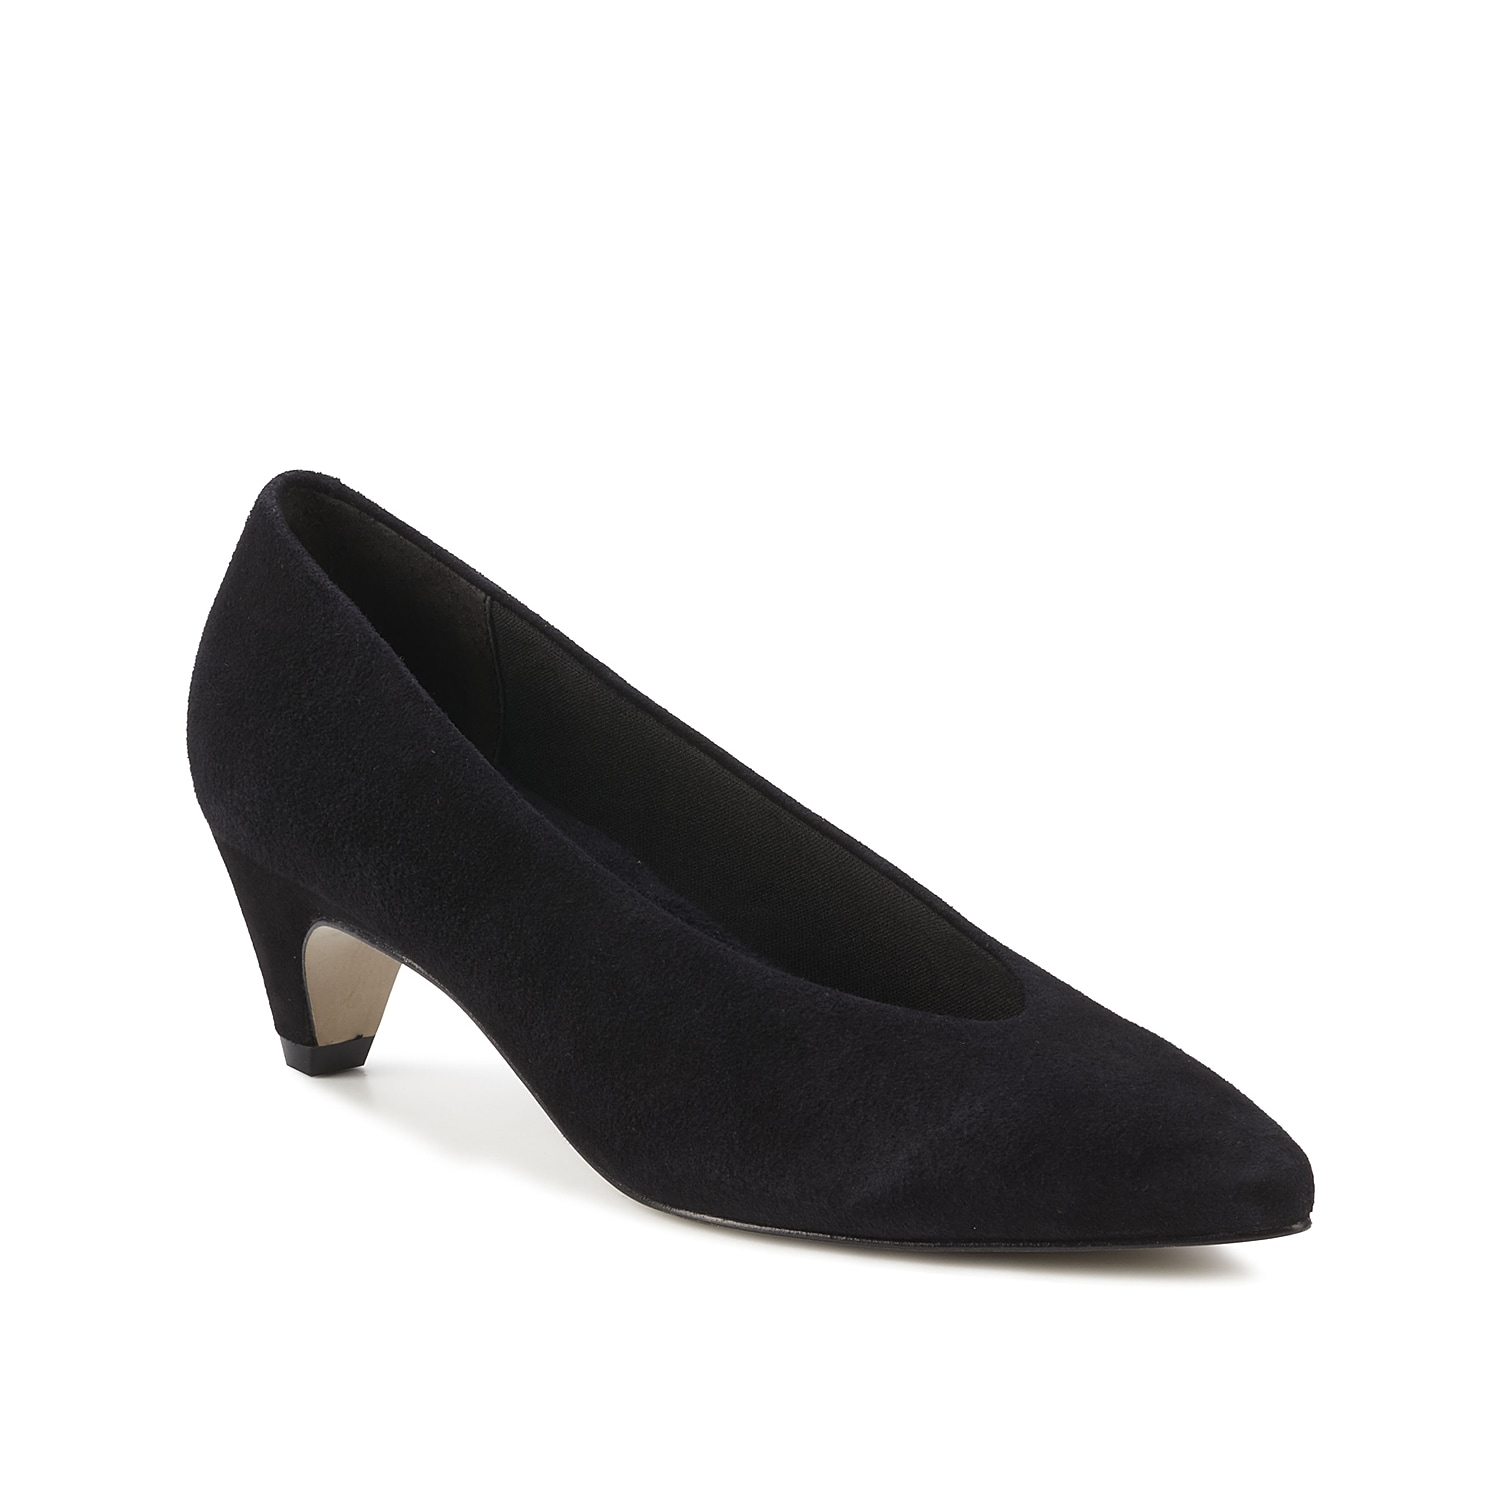 Classic and comfortable, the Raquel pump from Walking Cradles will become a new favorite. This pointed toe pair is finished with a Tiny Pillows footbed for daylong support.